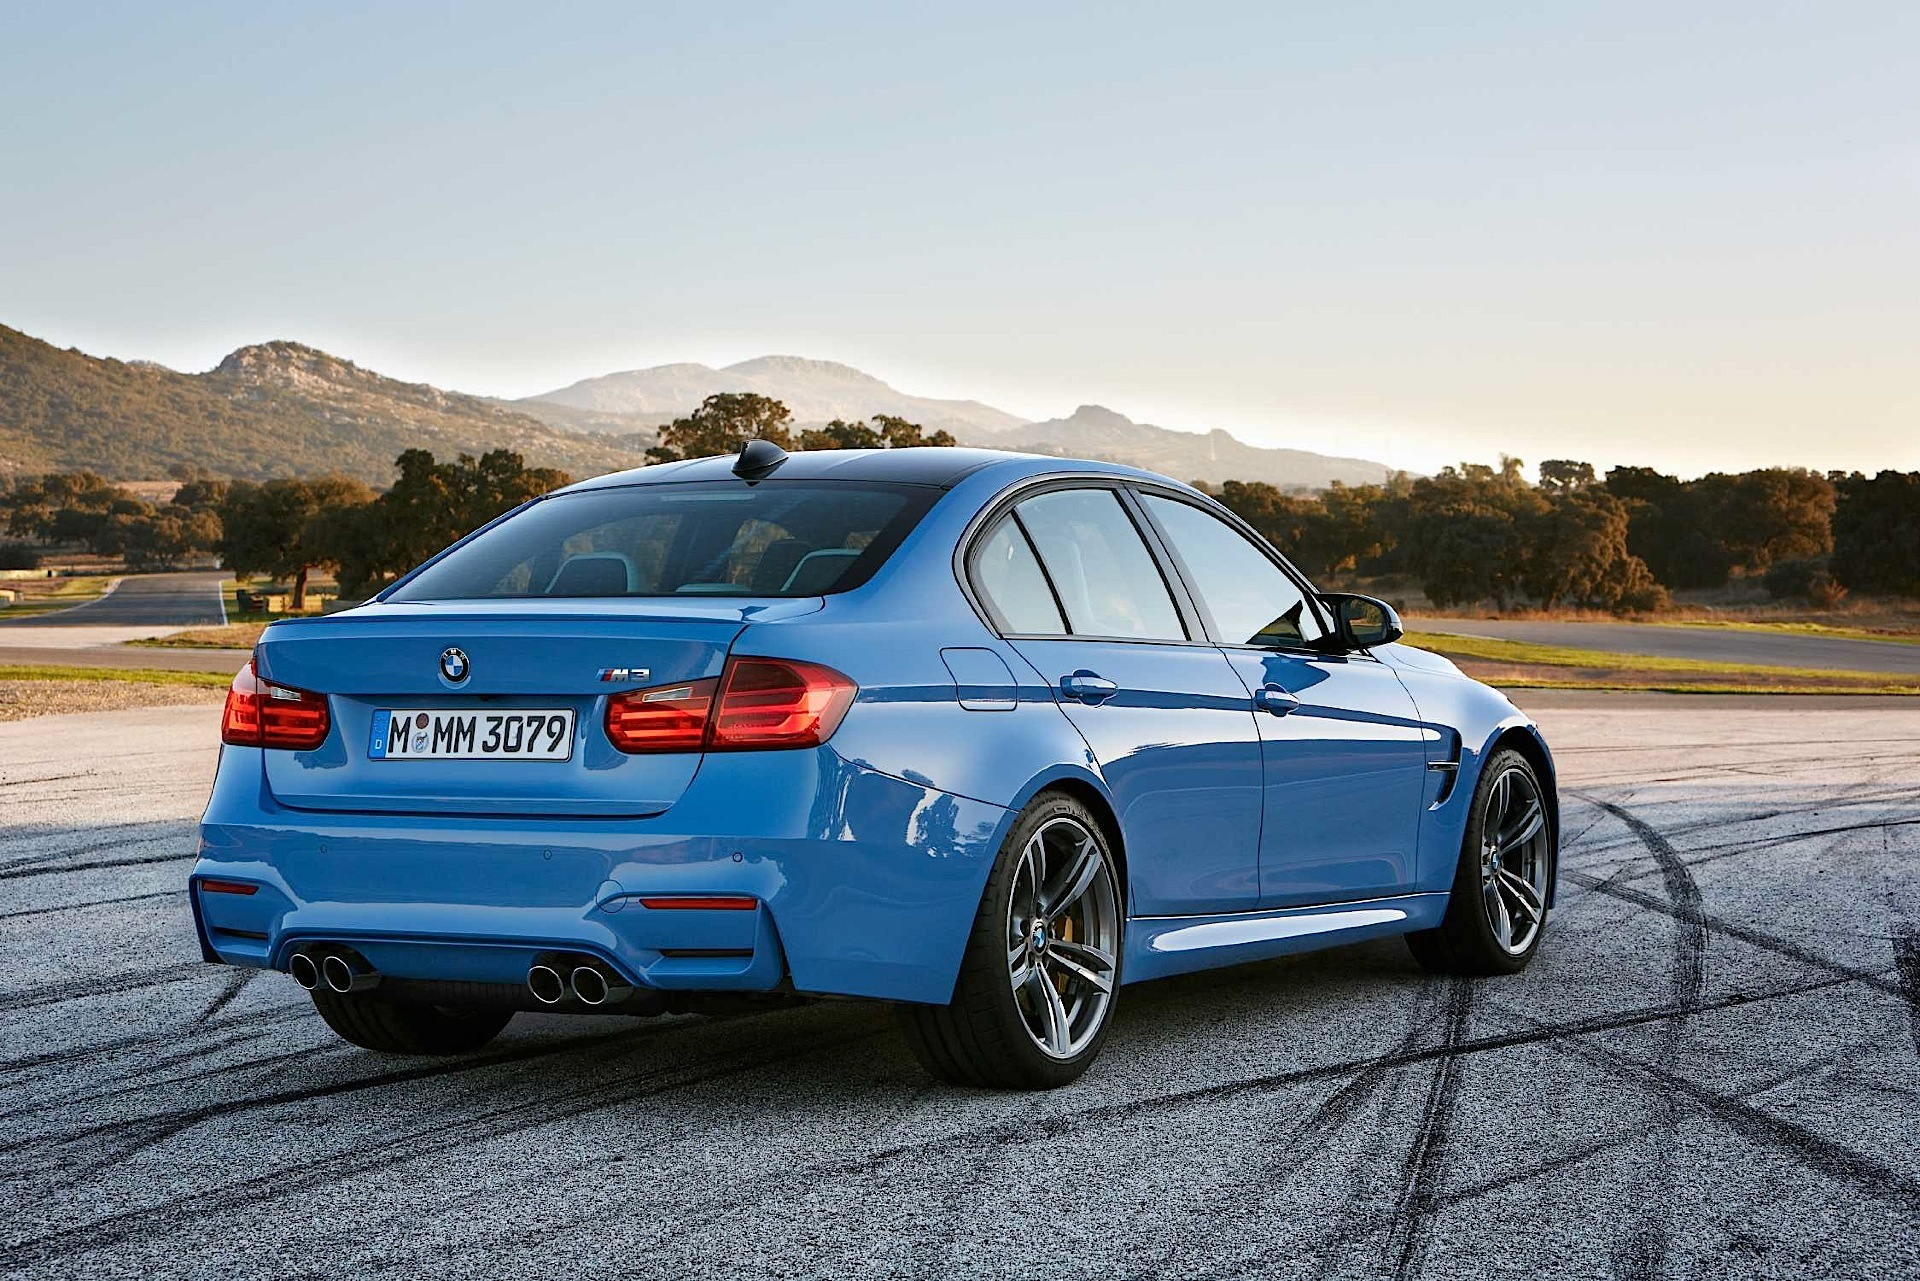 Bmw M3 Reviews >> BMW M3 (F80) - 2014, 2015, 2016, 2017 - autoevolution